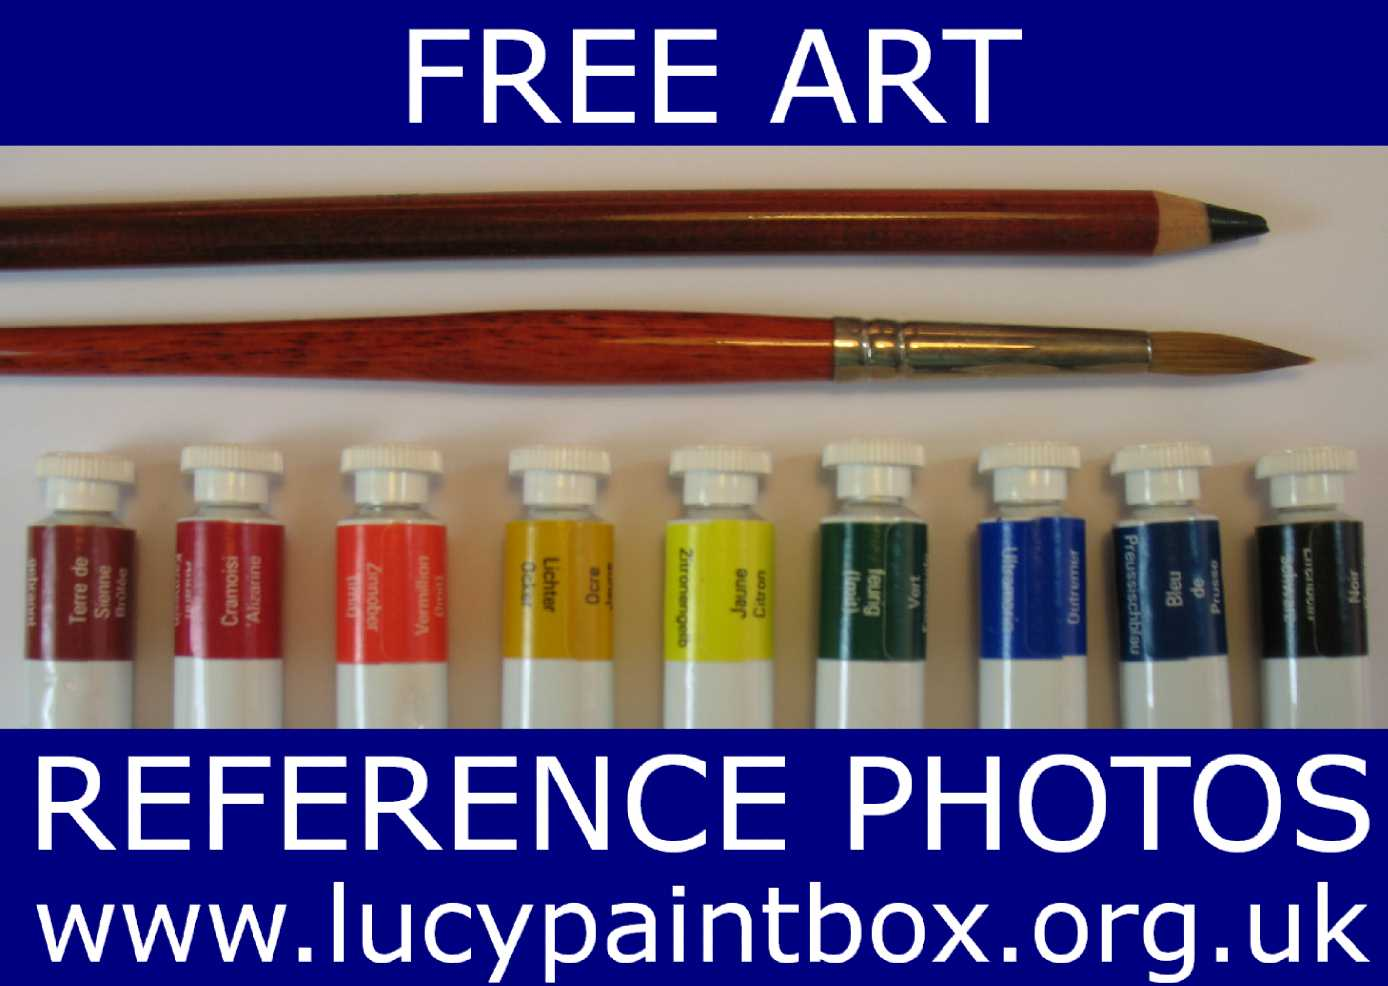 Lucy Paintbox Free Art Reference Photos